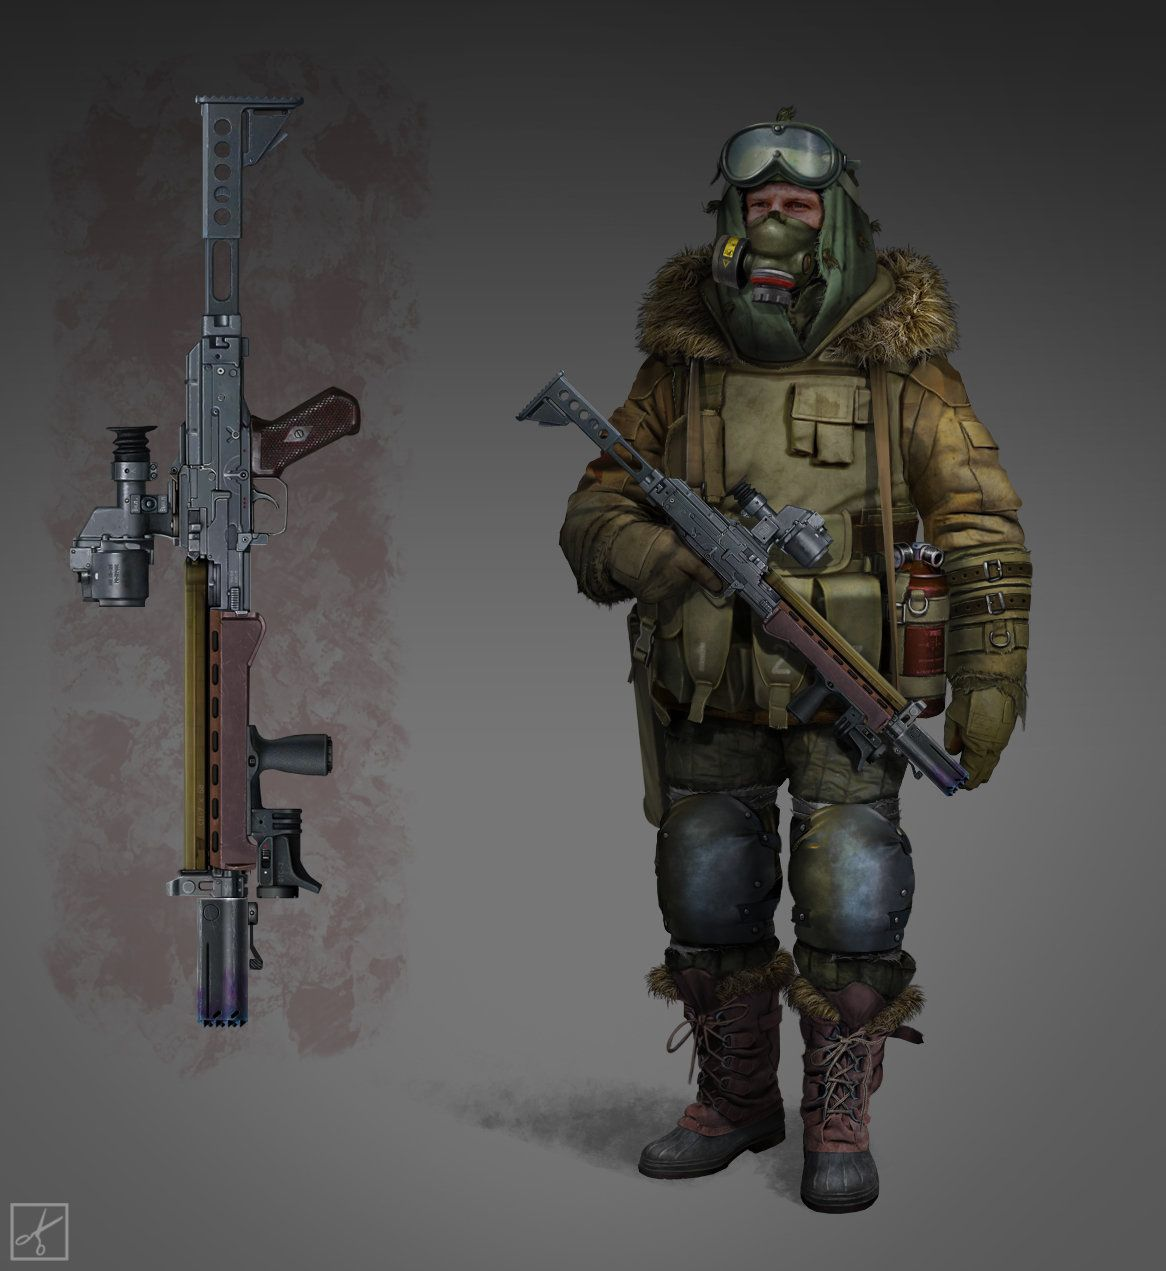 Apocalyptic Soldier Pics: Pin By Михаил Башков On Weapon